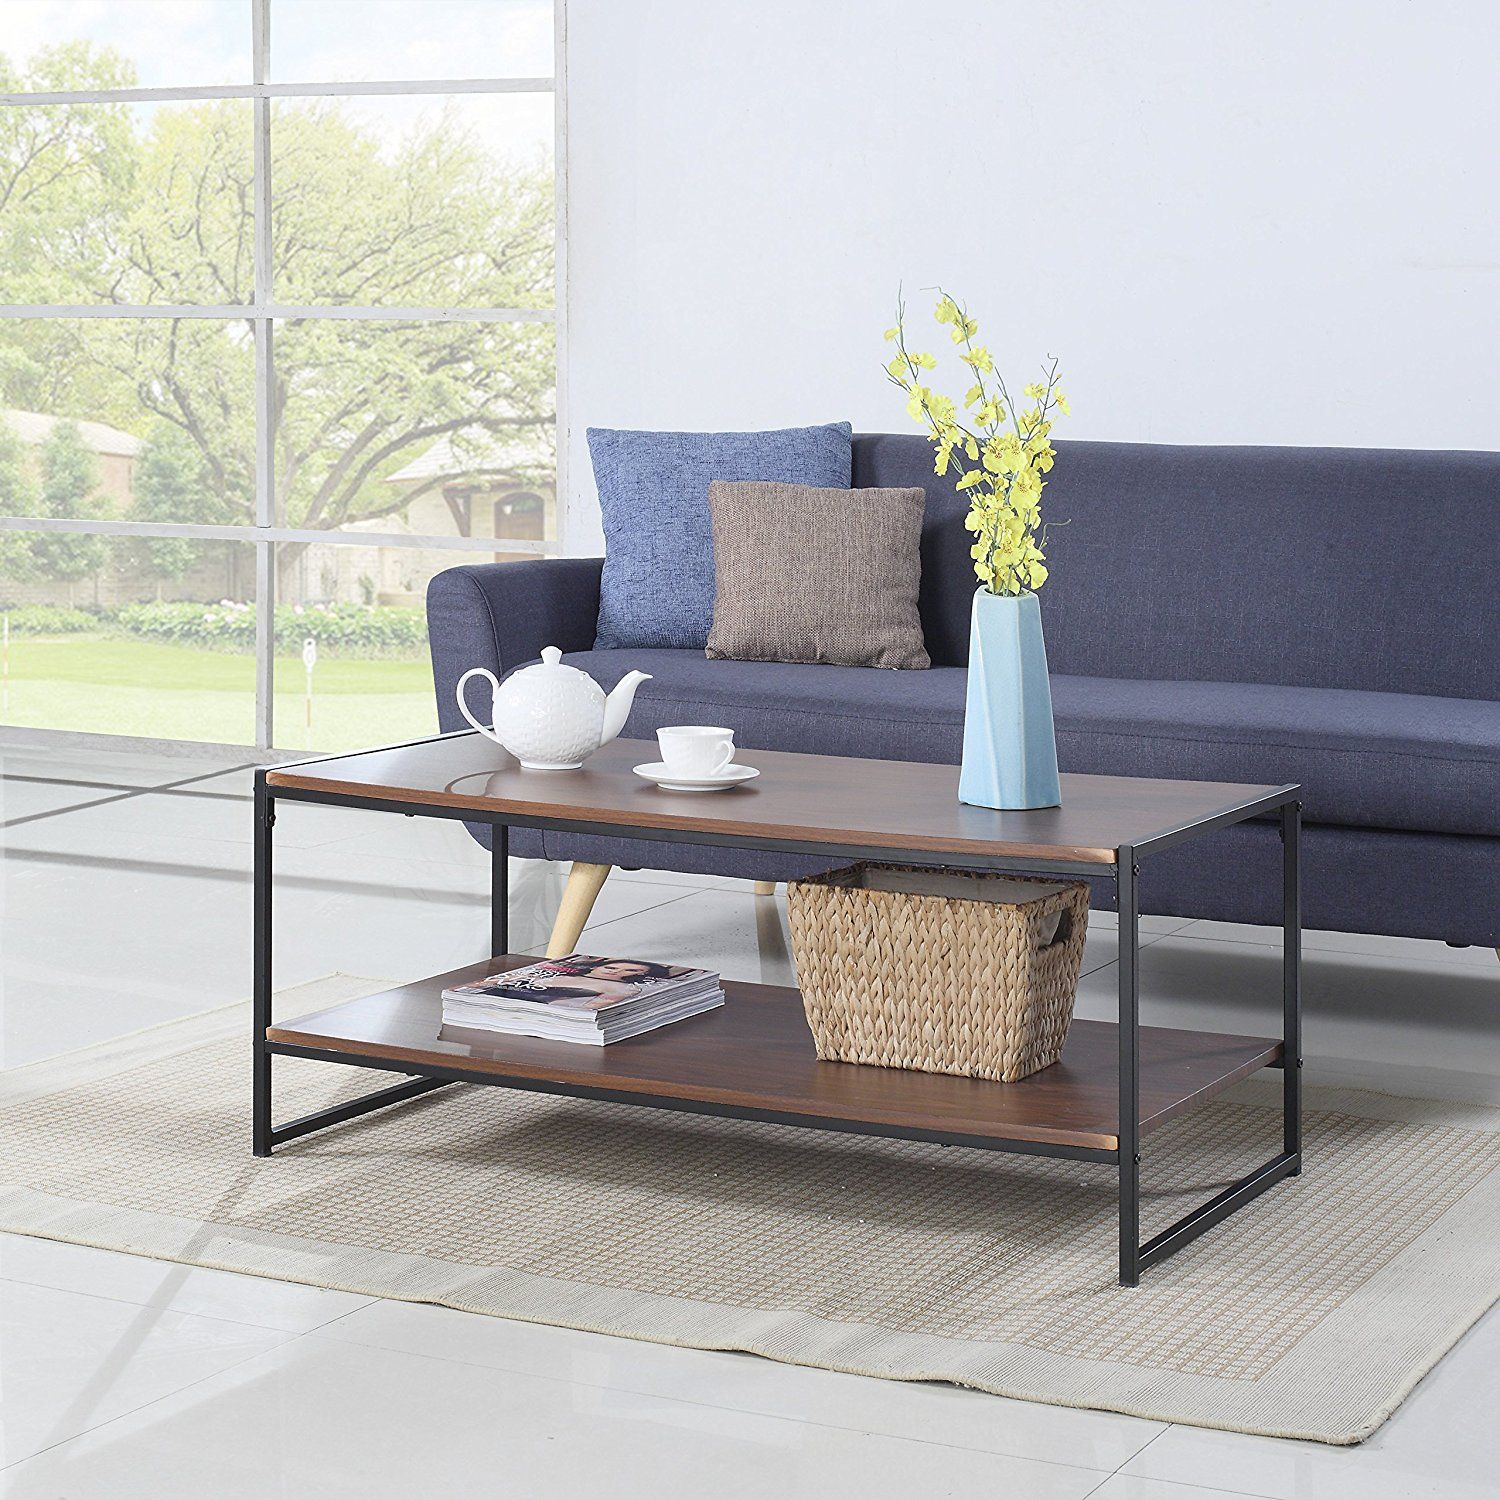 31 cheap coffee tables that cost under 100 from amazon brown these cute cheap coffee tables are all from amazon and these coffee tables are all geotapseo Gallery